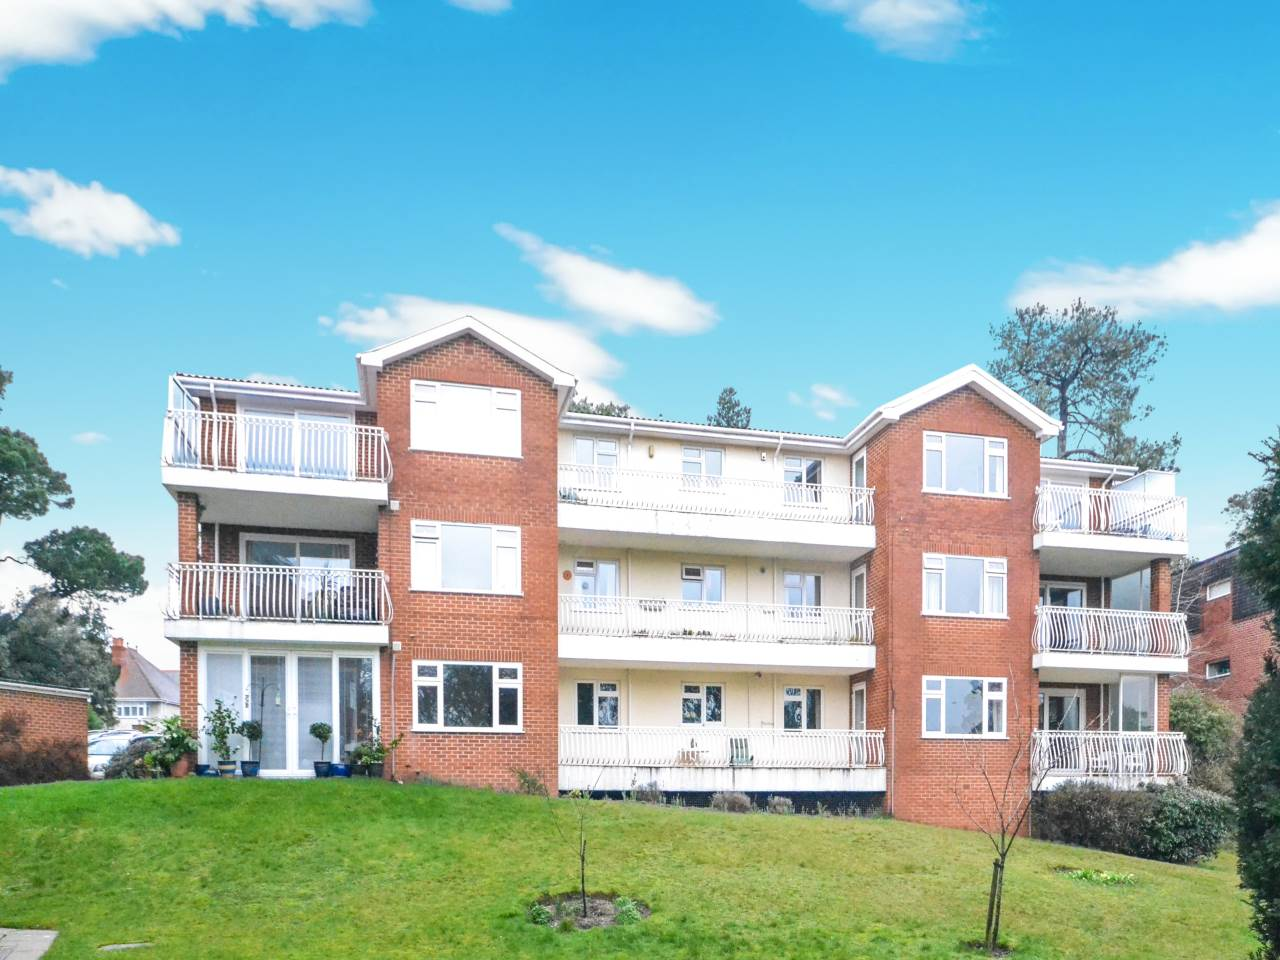 3 bed flat for sale in Fairview Park, Overbury Road - Property Image 1